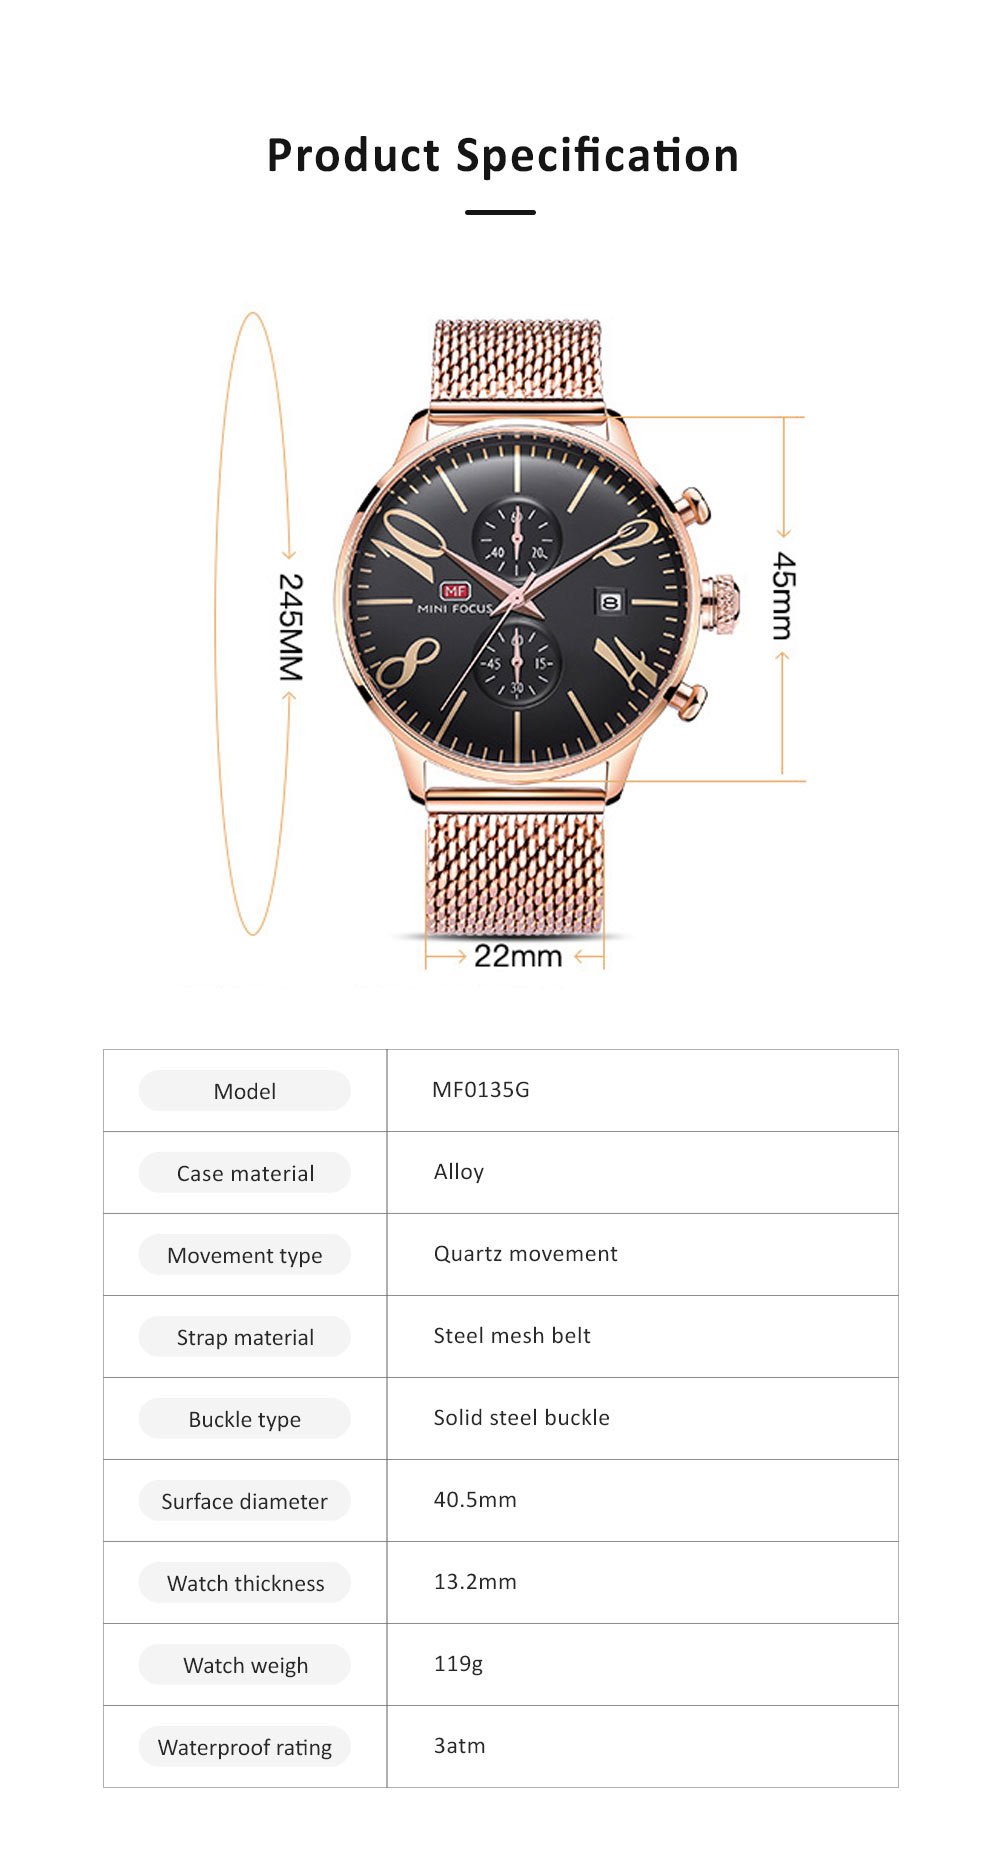 Men's Business Watch, Multi-Function Sports Waterproof Watch, Fashion Chronograph Quartz Watch for Outdoor Width 22mm Length 245mm 5